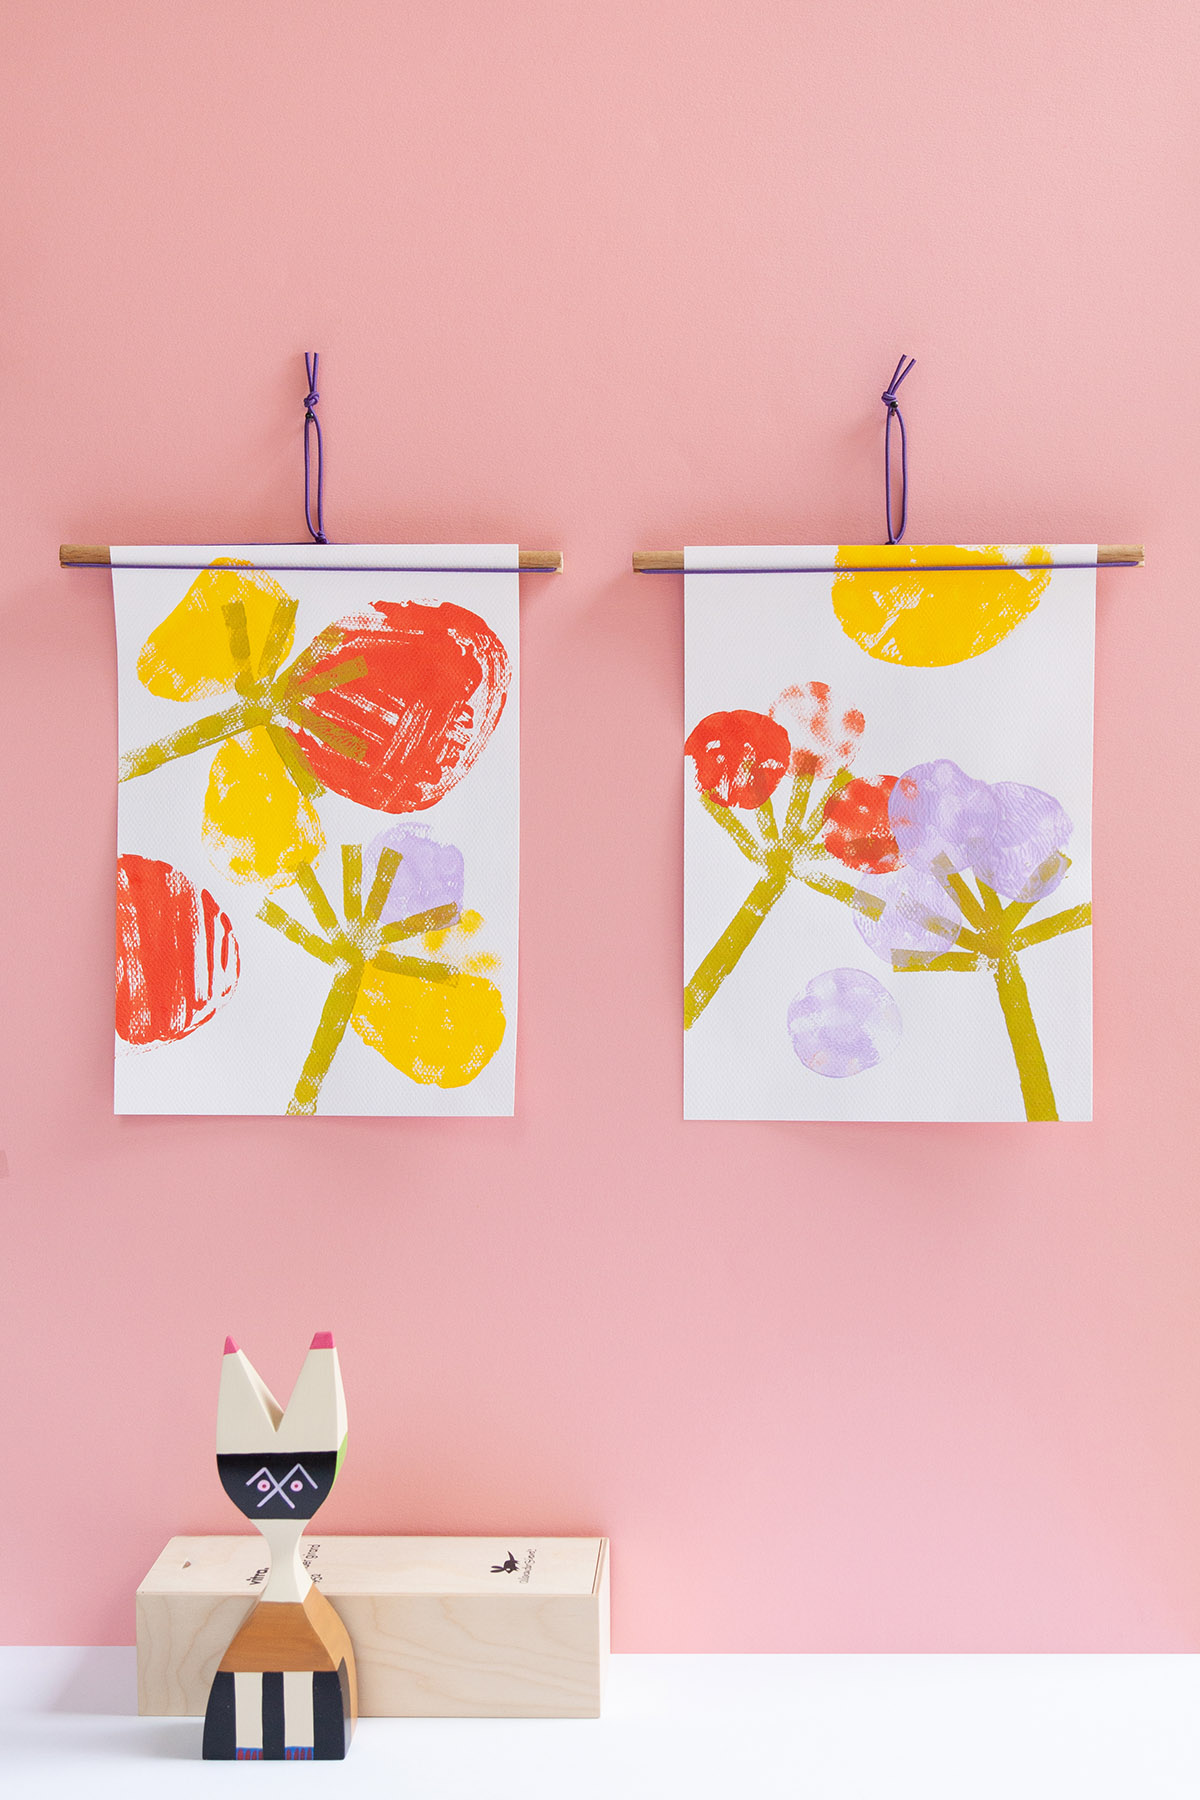 DIY Artwork Display - Learn how to make an easy hanging art display. - www.yeswemadethis.com